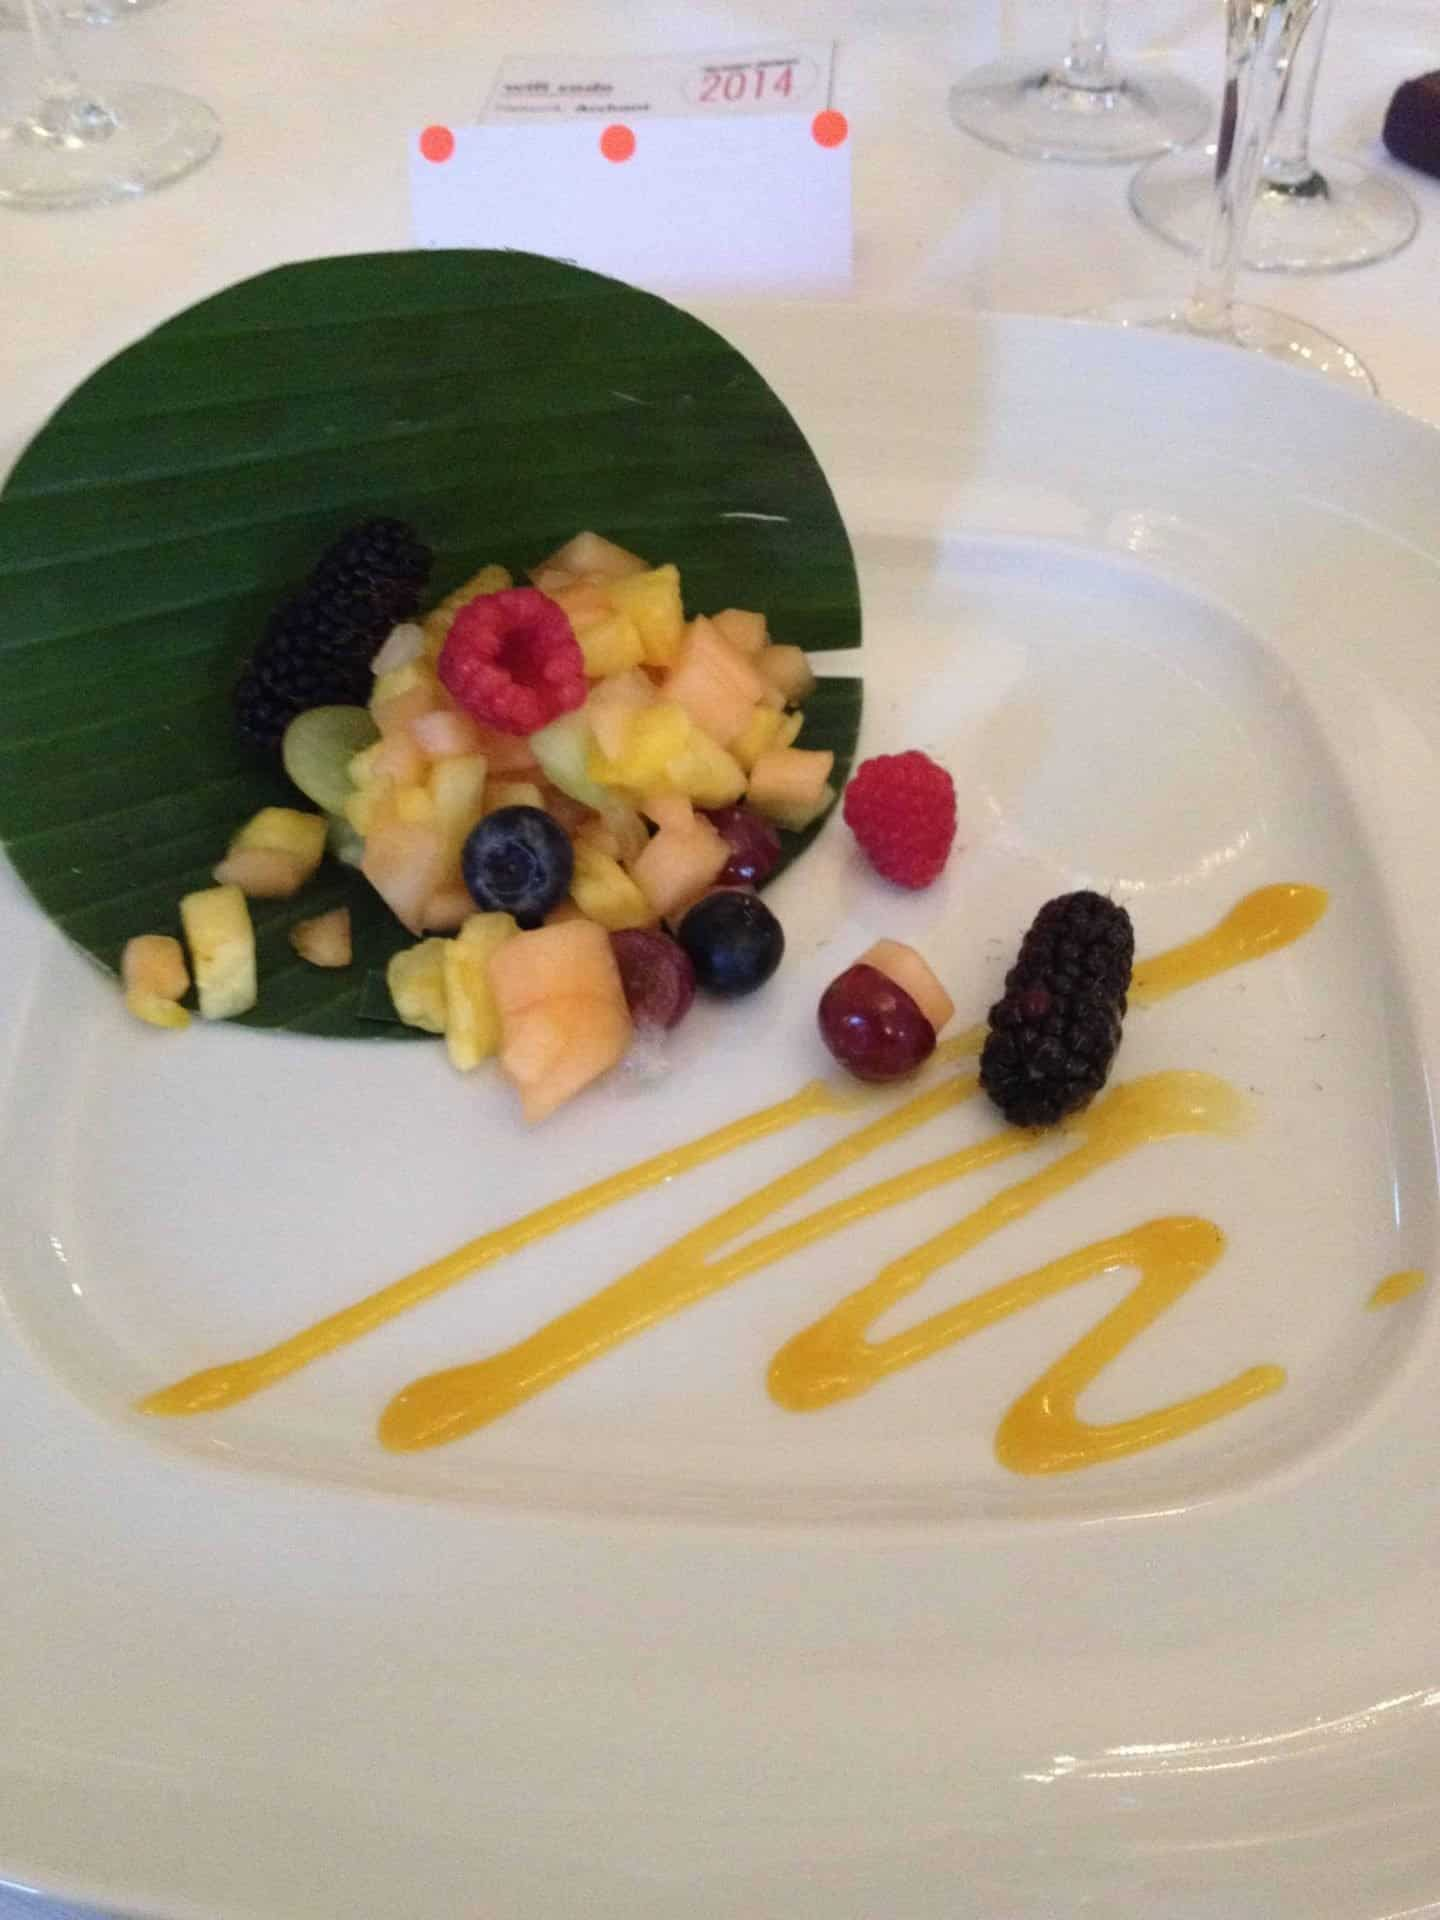 Eating gluten free at awards dos: bring on the fruit salad…